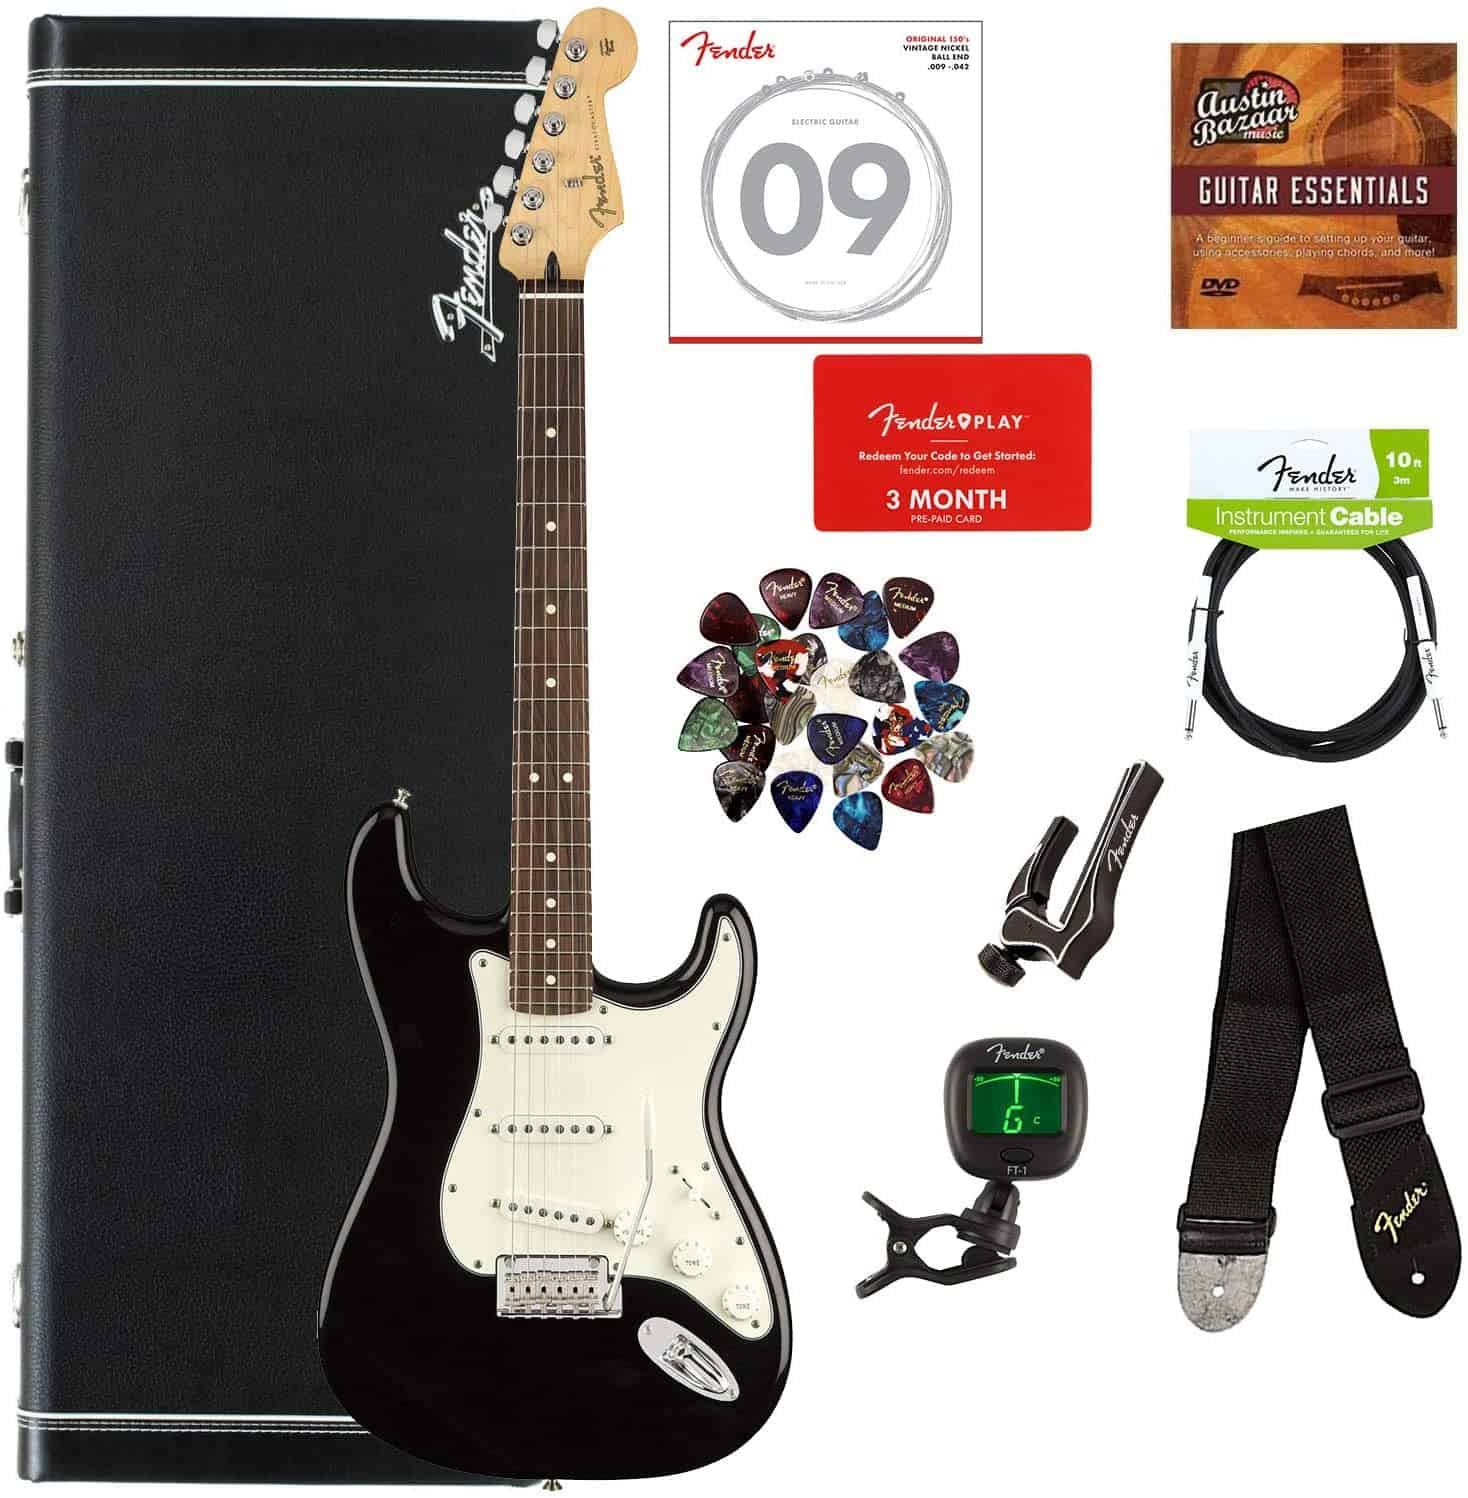 Overall best blues guitar- Fender Stratocaster complete with hardshell case and other accessories